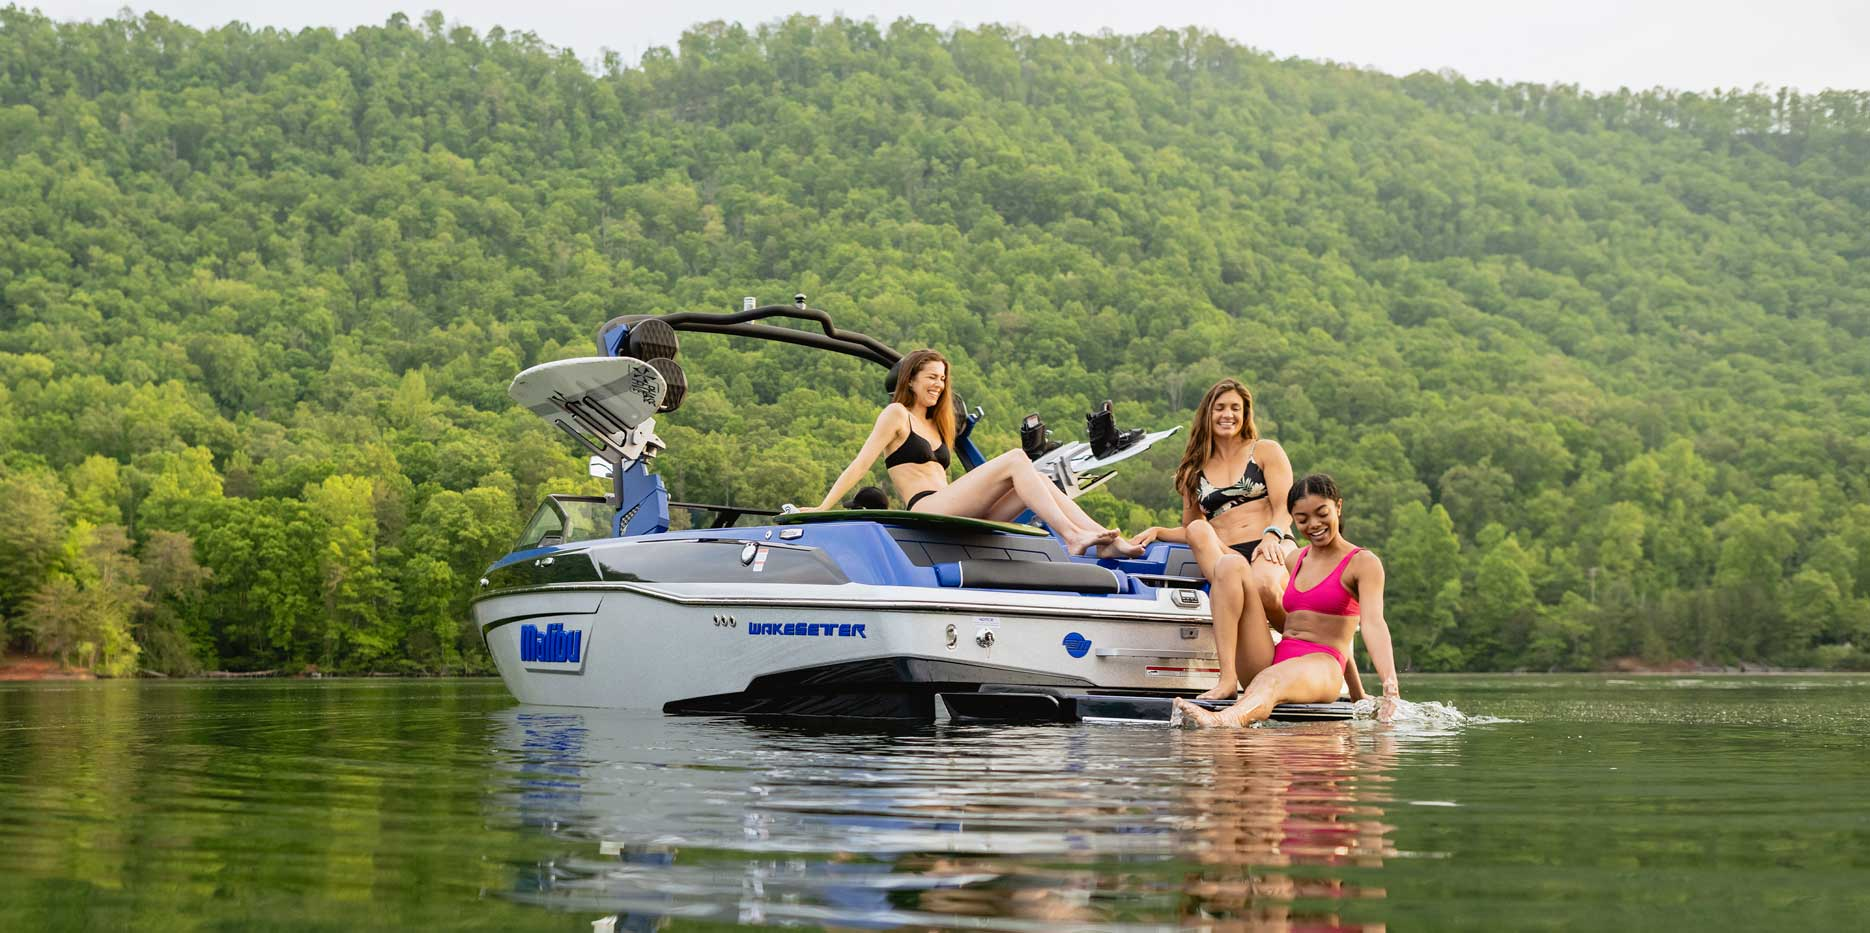 Enjoy the all-new 23 LSV